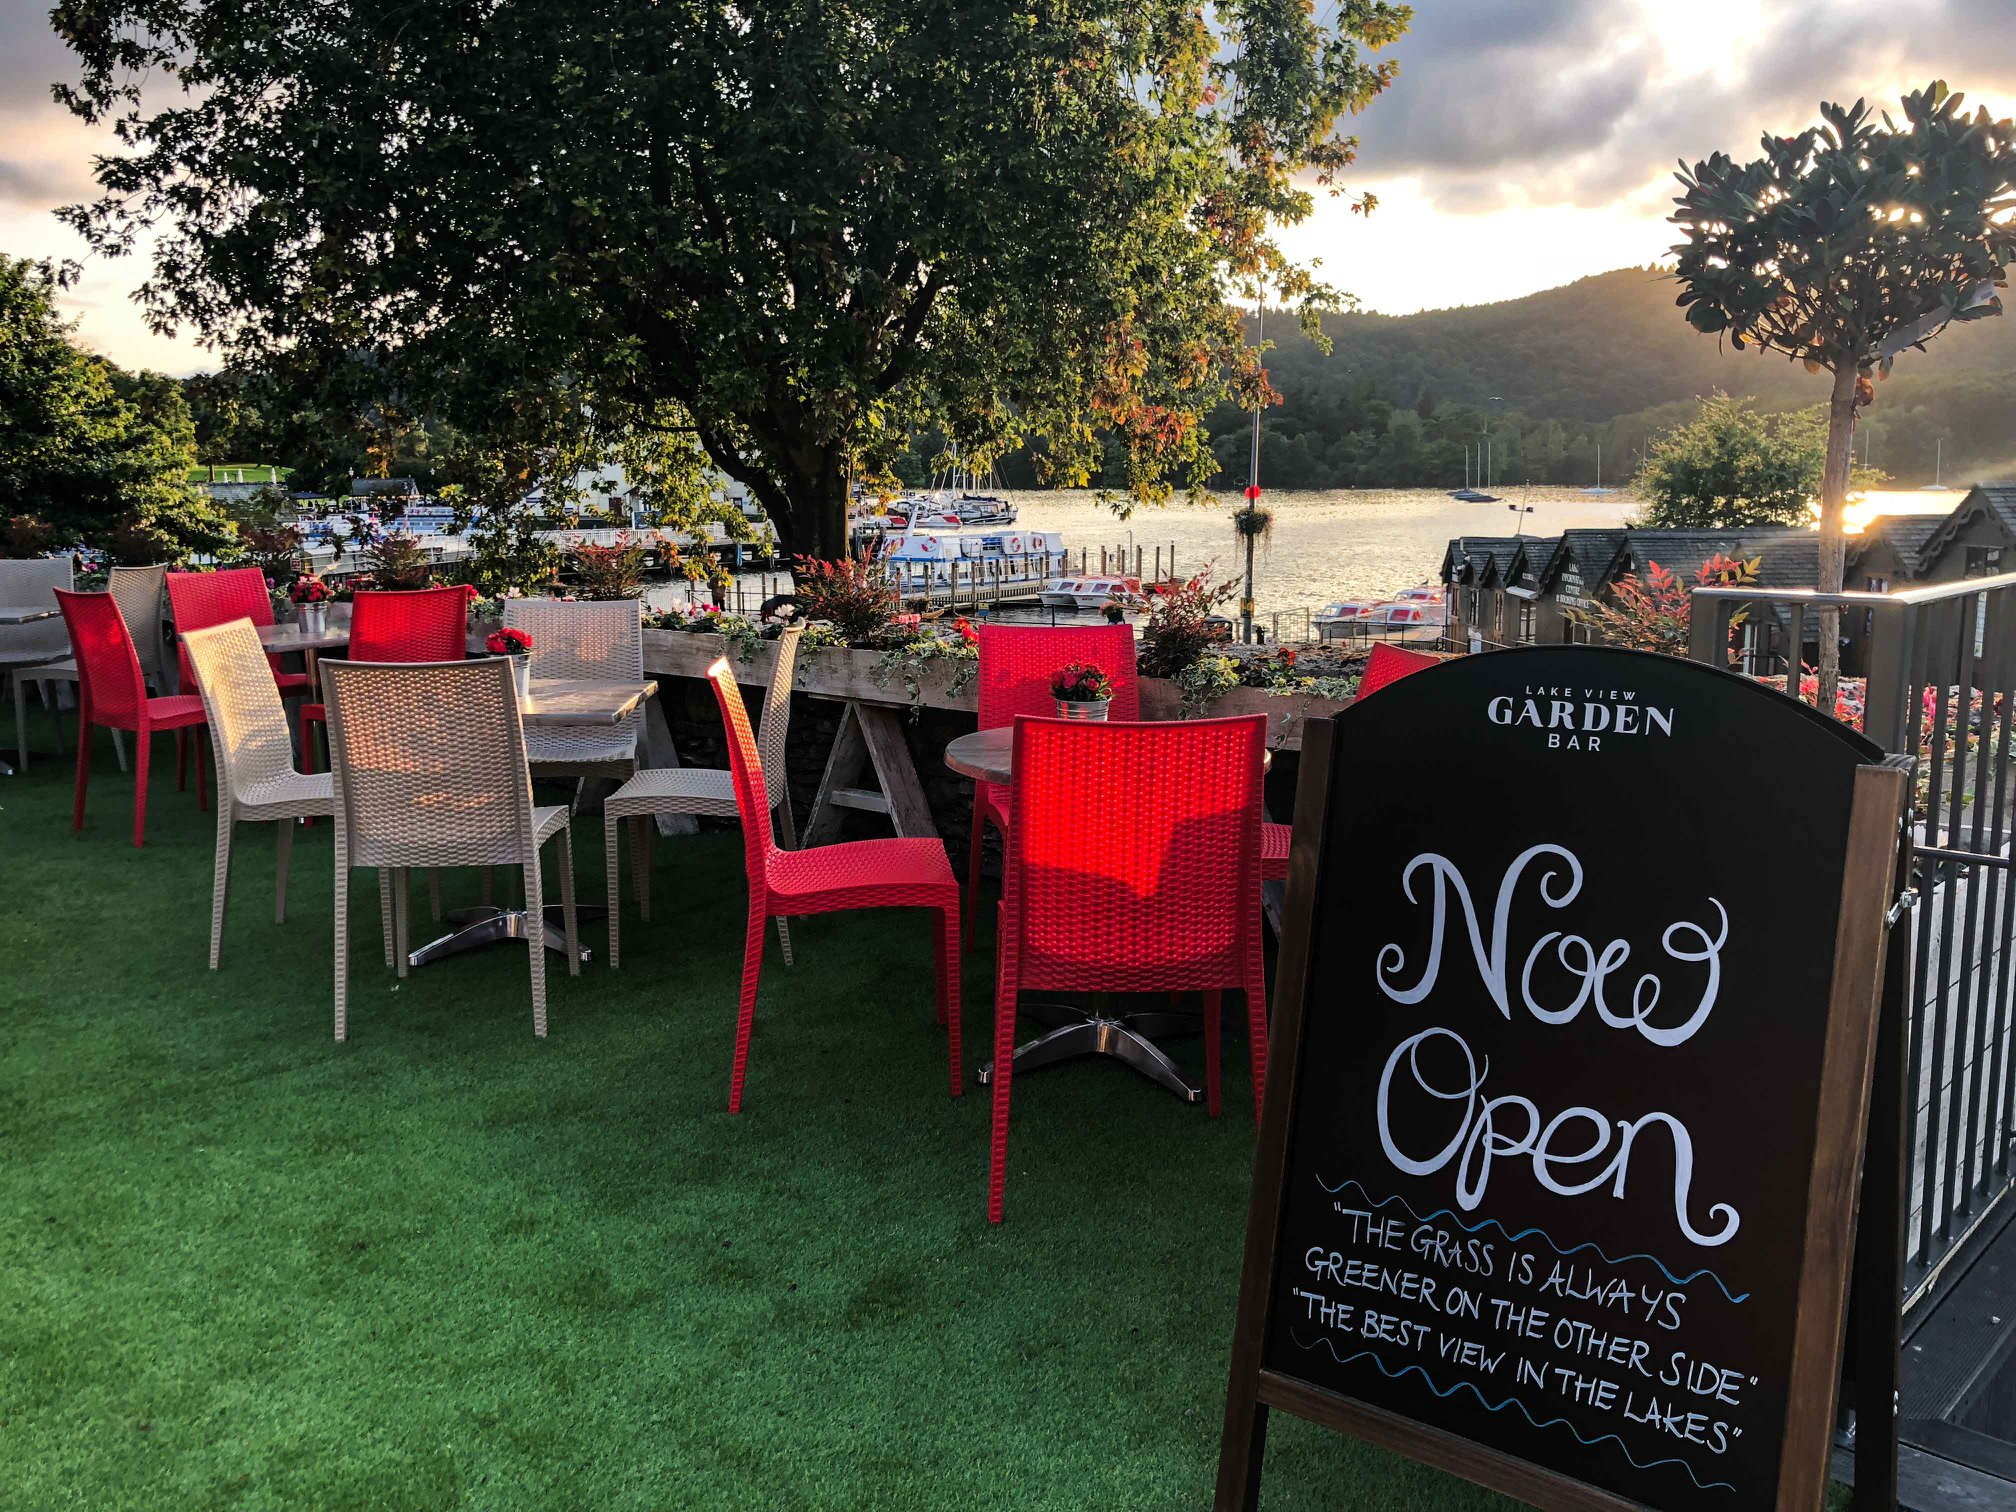 The Best View In The Lakes Lake View Garden Bar The Cranleigh Boutique Hotel